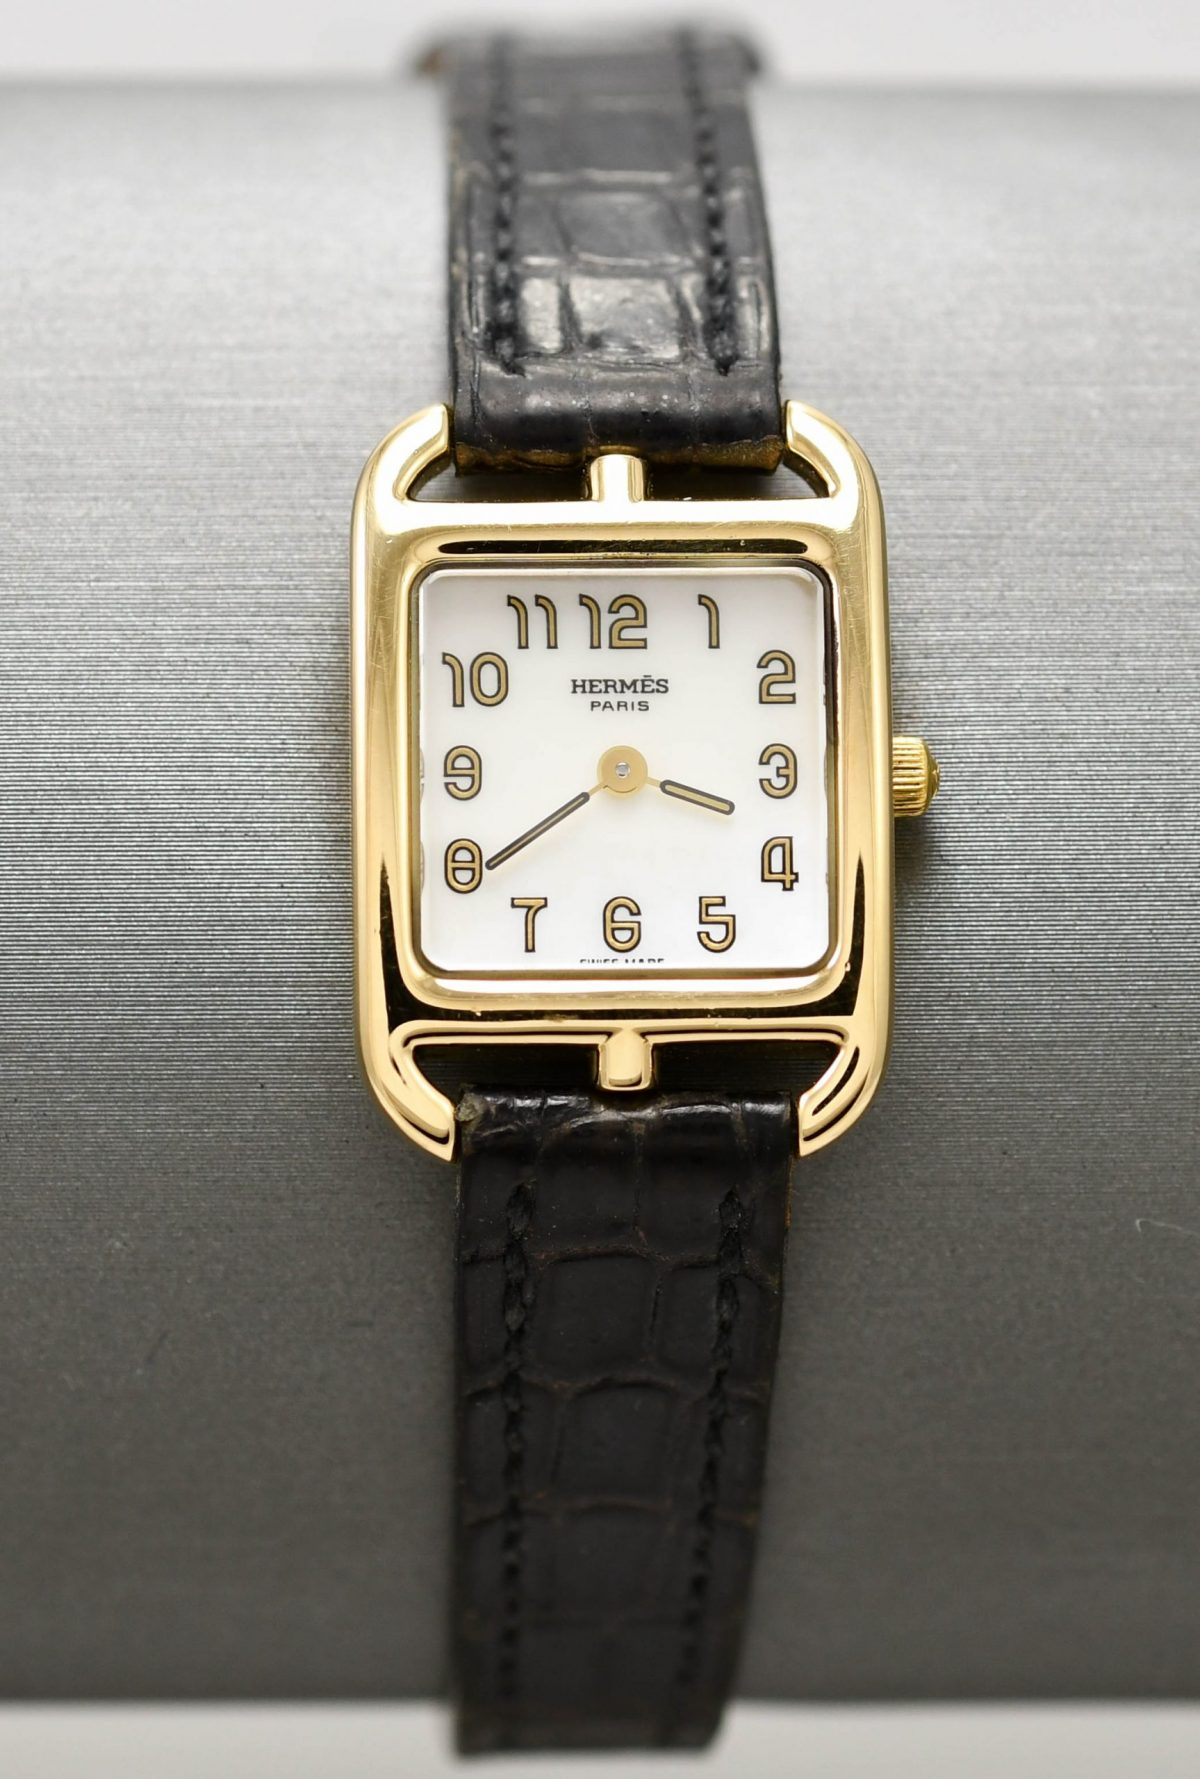 Ladies designer wristwatch by Hermes with 18k yellow gold case and mother of pearl dial.